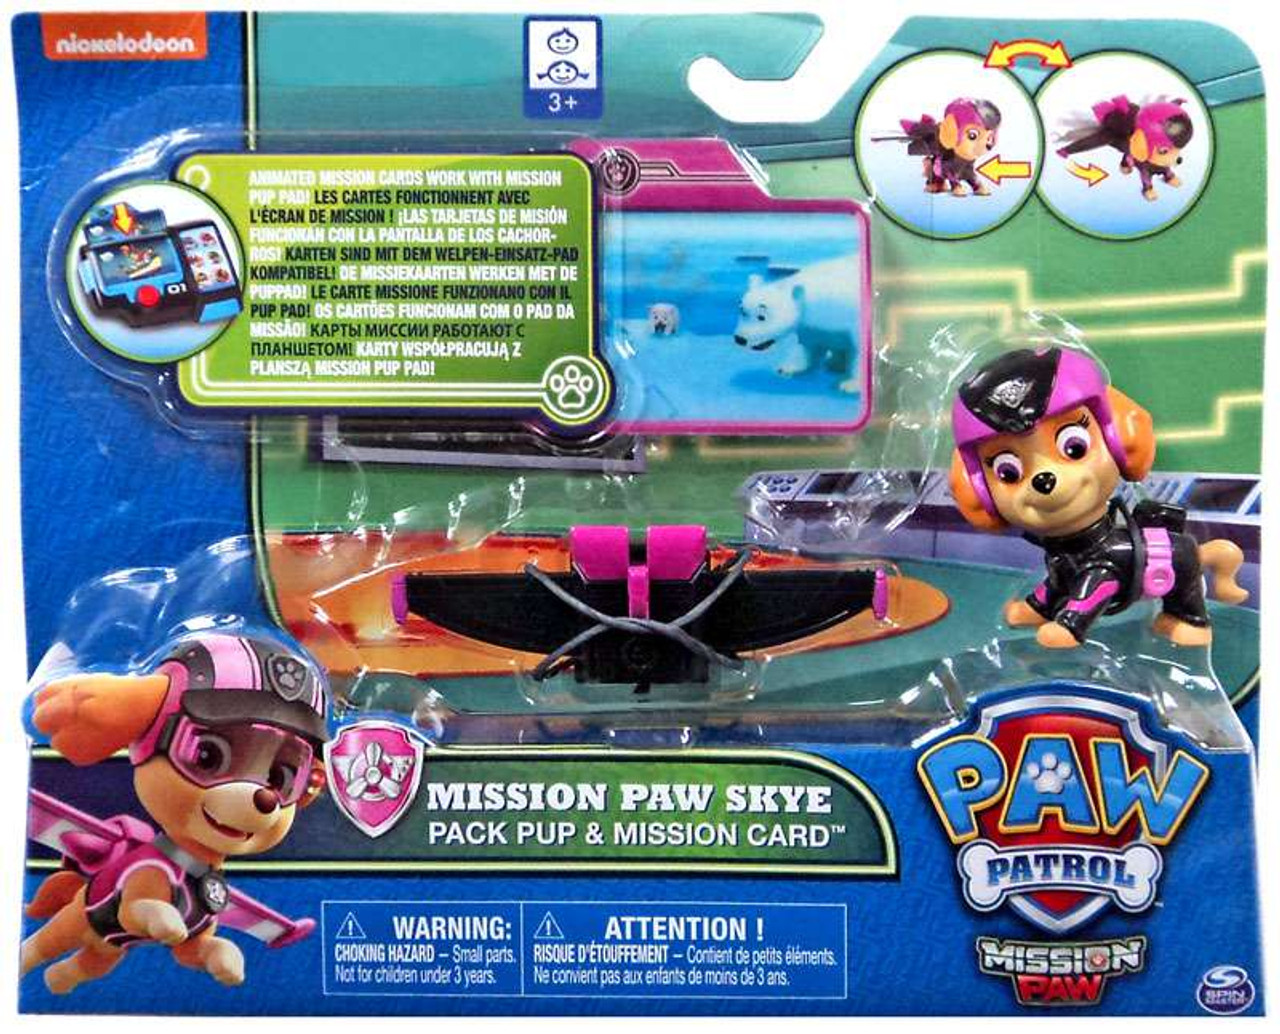 Paw Patrol Mission Paw Pack Pup Mission Card Mission Paw Skye